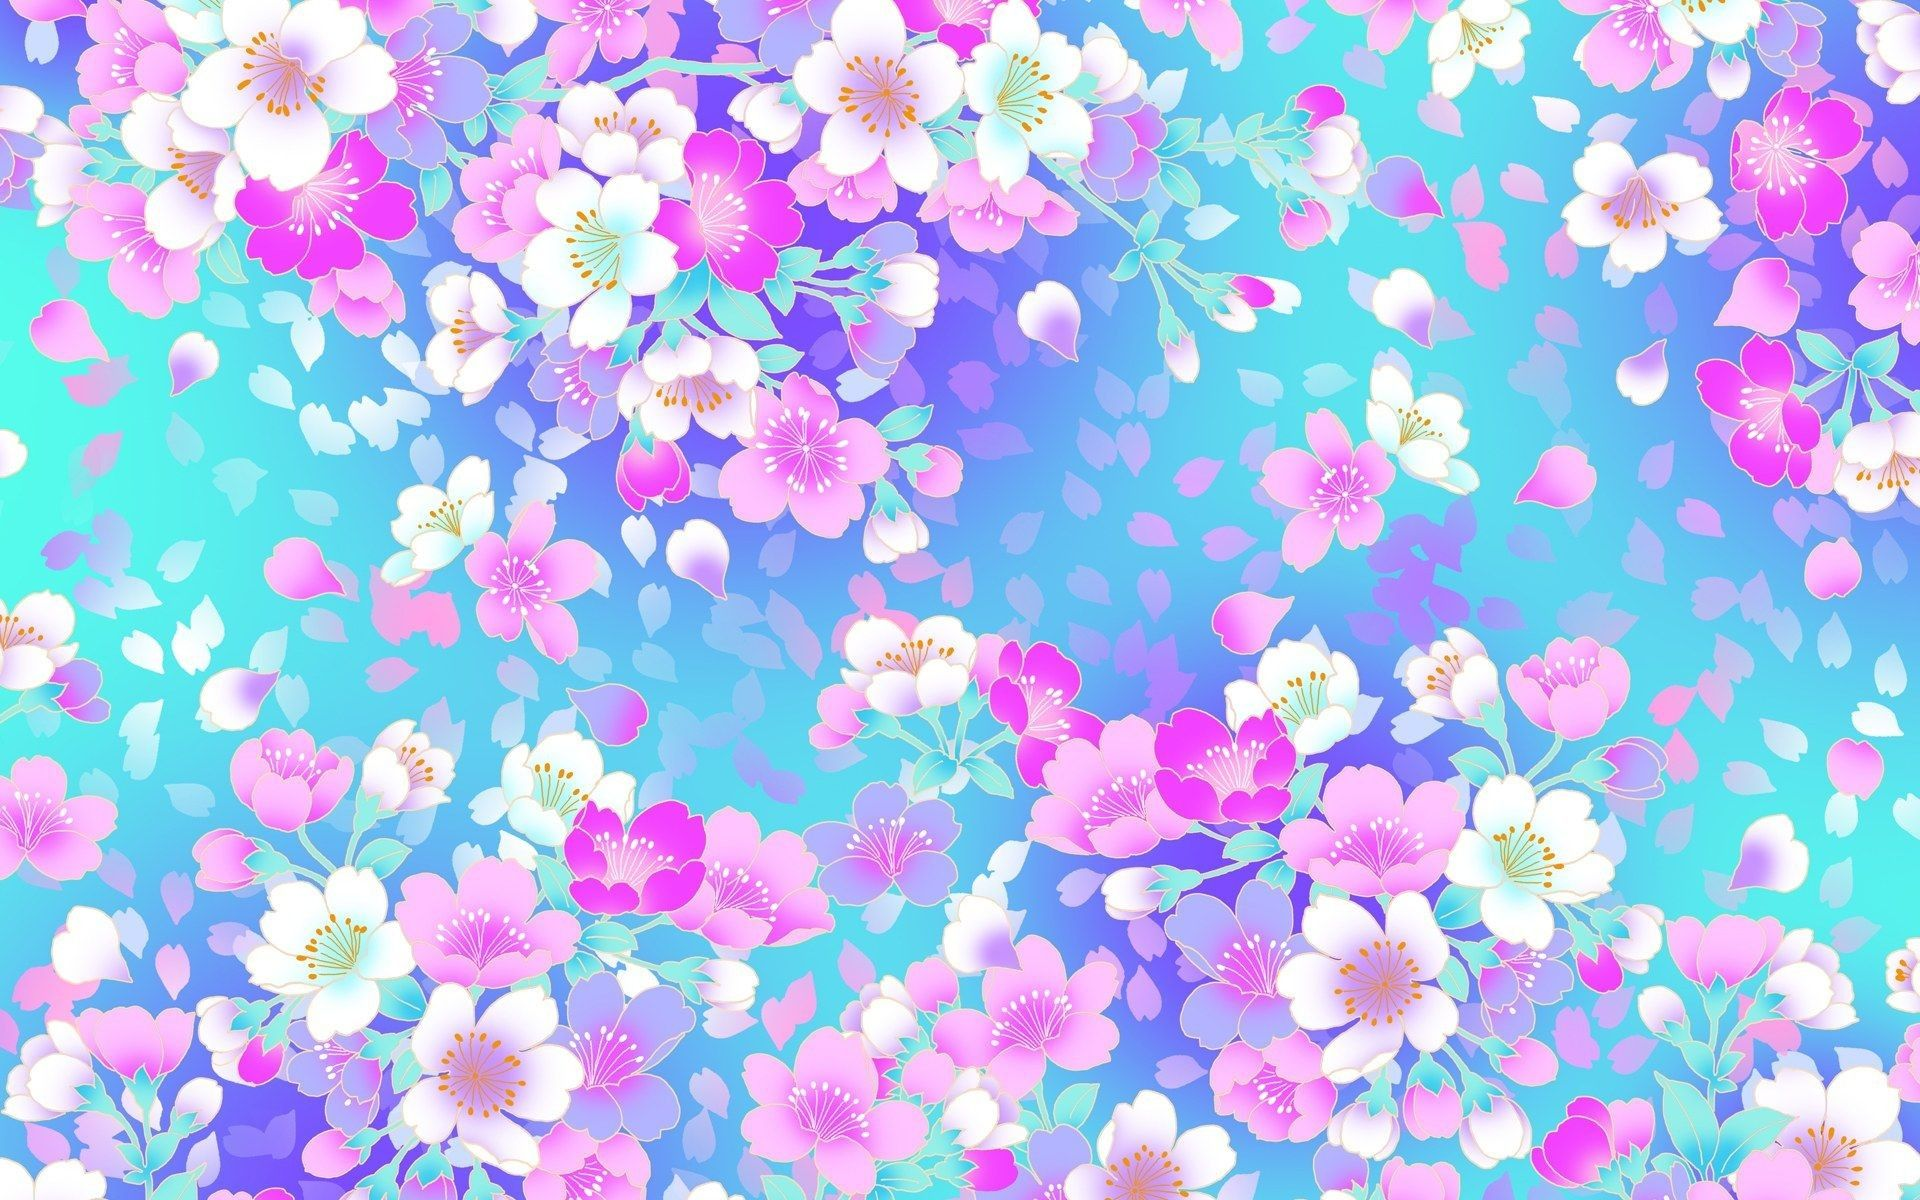 Adorable Hdq Backgrounds Of Girly 1920x1200 For Pc Mac Laptop Tablet 1920x1200 Flowery Wallpaper Tumblr Backgrounds Floral Pattern Wallpaper